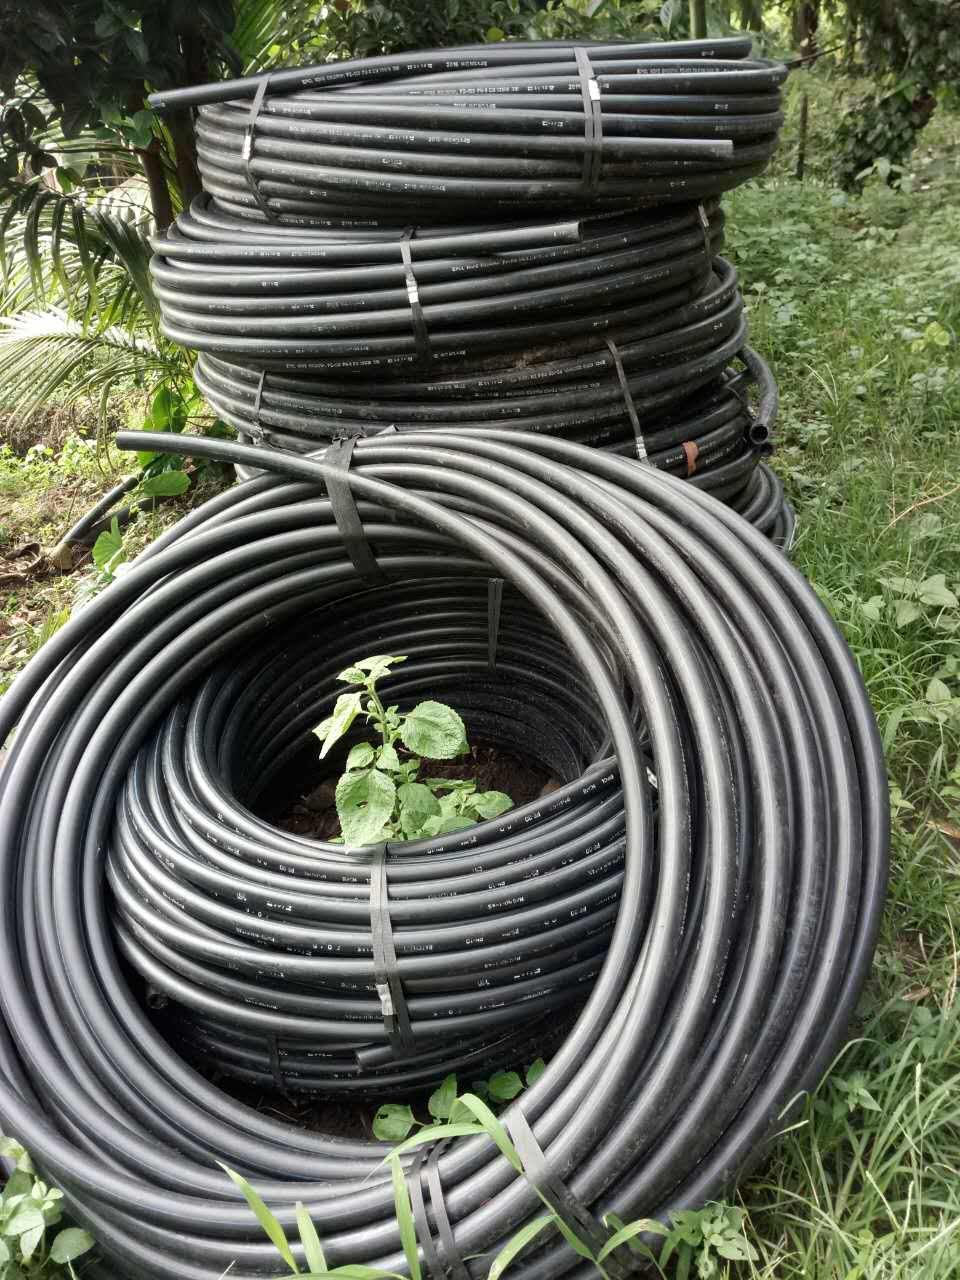 HDPE piping supplies for the water systems